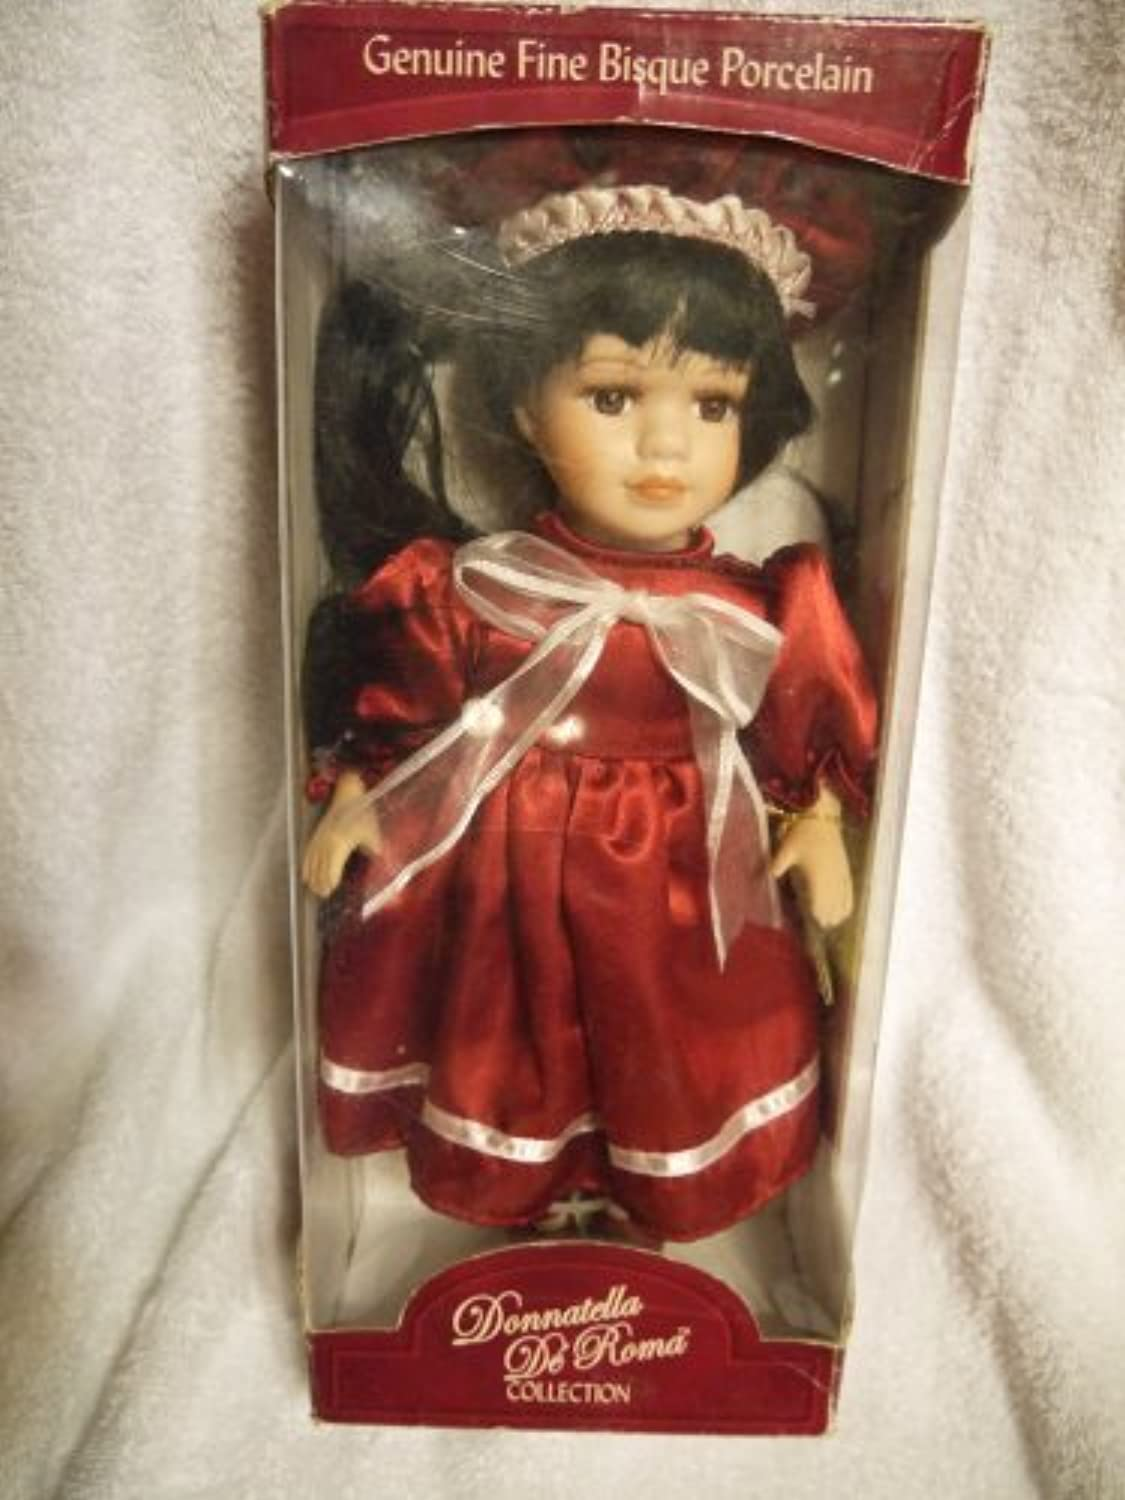 COLLECTOR'S CHOICE - Limited Edition Doll by damentella De Roma by Collector's Choice